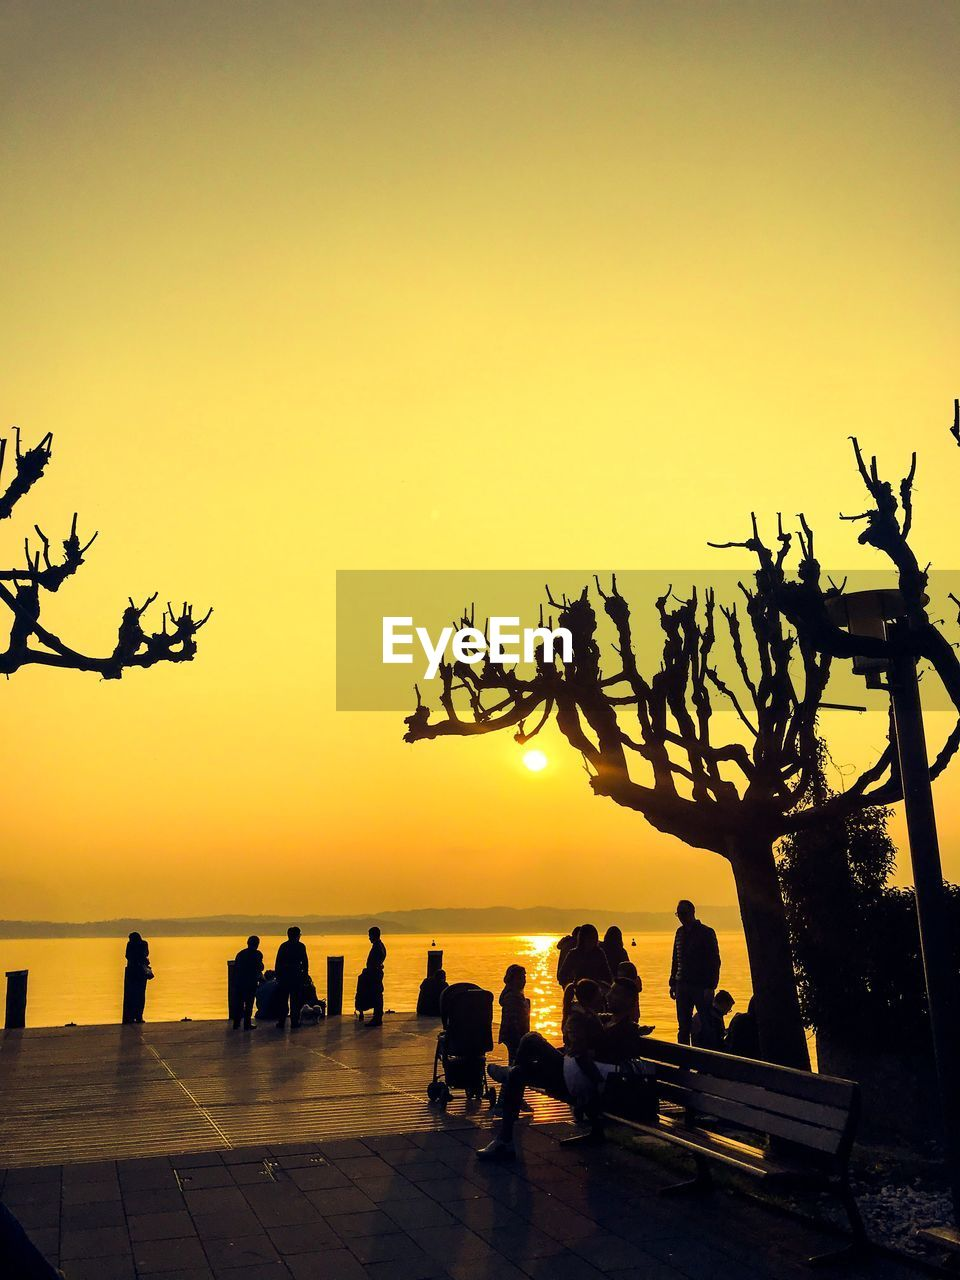 sky, sunset, group of people, silhouette, water, sea, orange color, real people, nature, scenics - nature, beauty in nature, leisure activity, tree, beach, large group of people, horizon over water, lifestyles, land, tranquility, outdoors